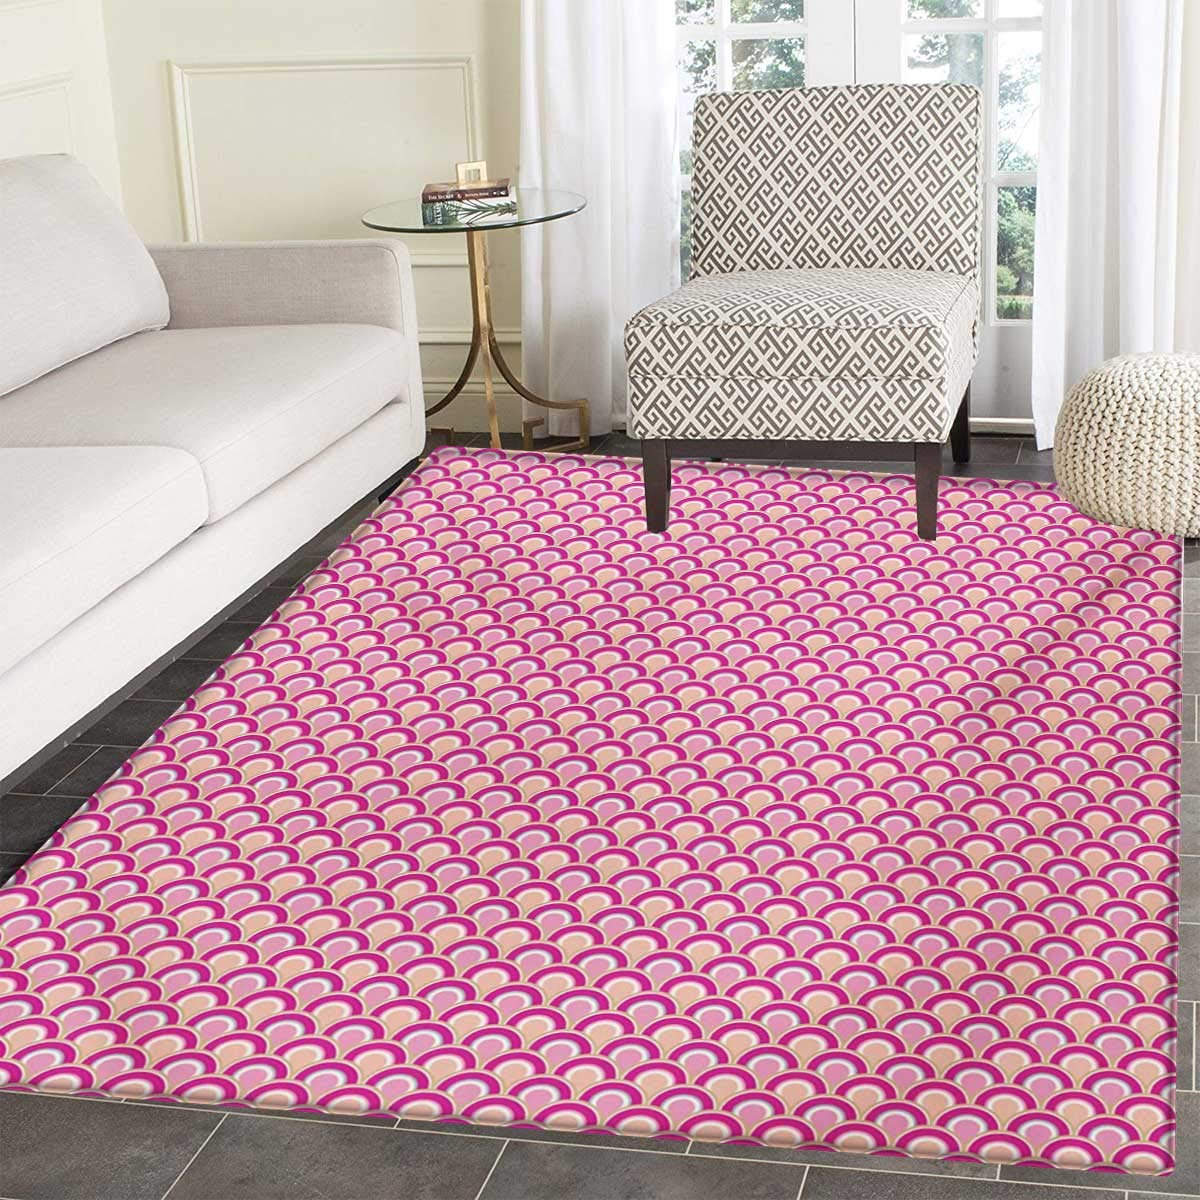 Pink Door Mat Rug Overlapping Circles Dotted Design Vibrant Colored Sea Inspired Wavy Print Bath Mat 3D Digital Printing Mat 24'x36' Pink Magenta Peach Anhounine